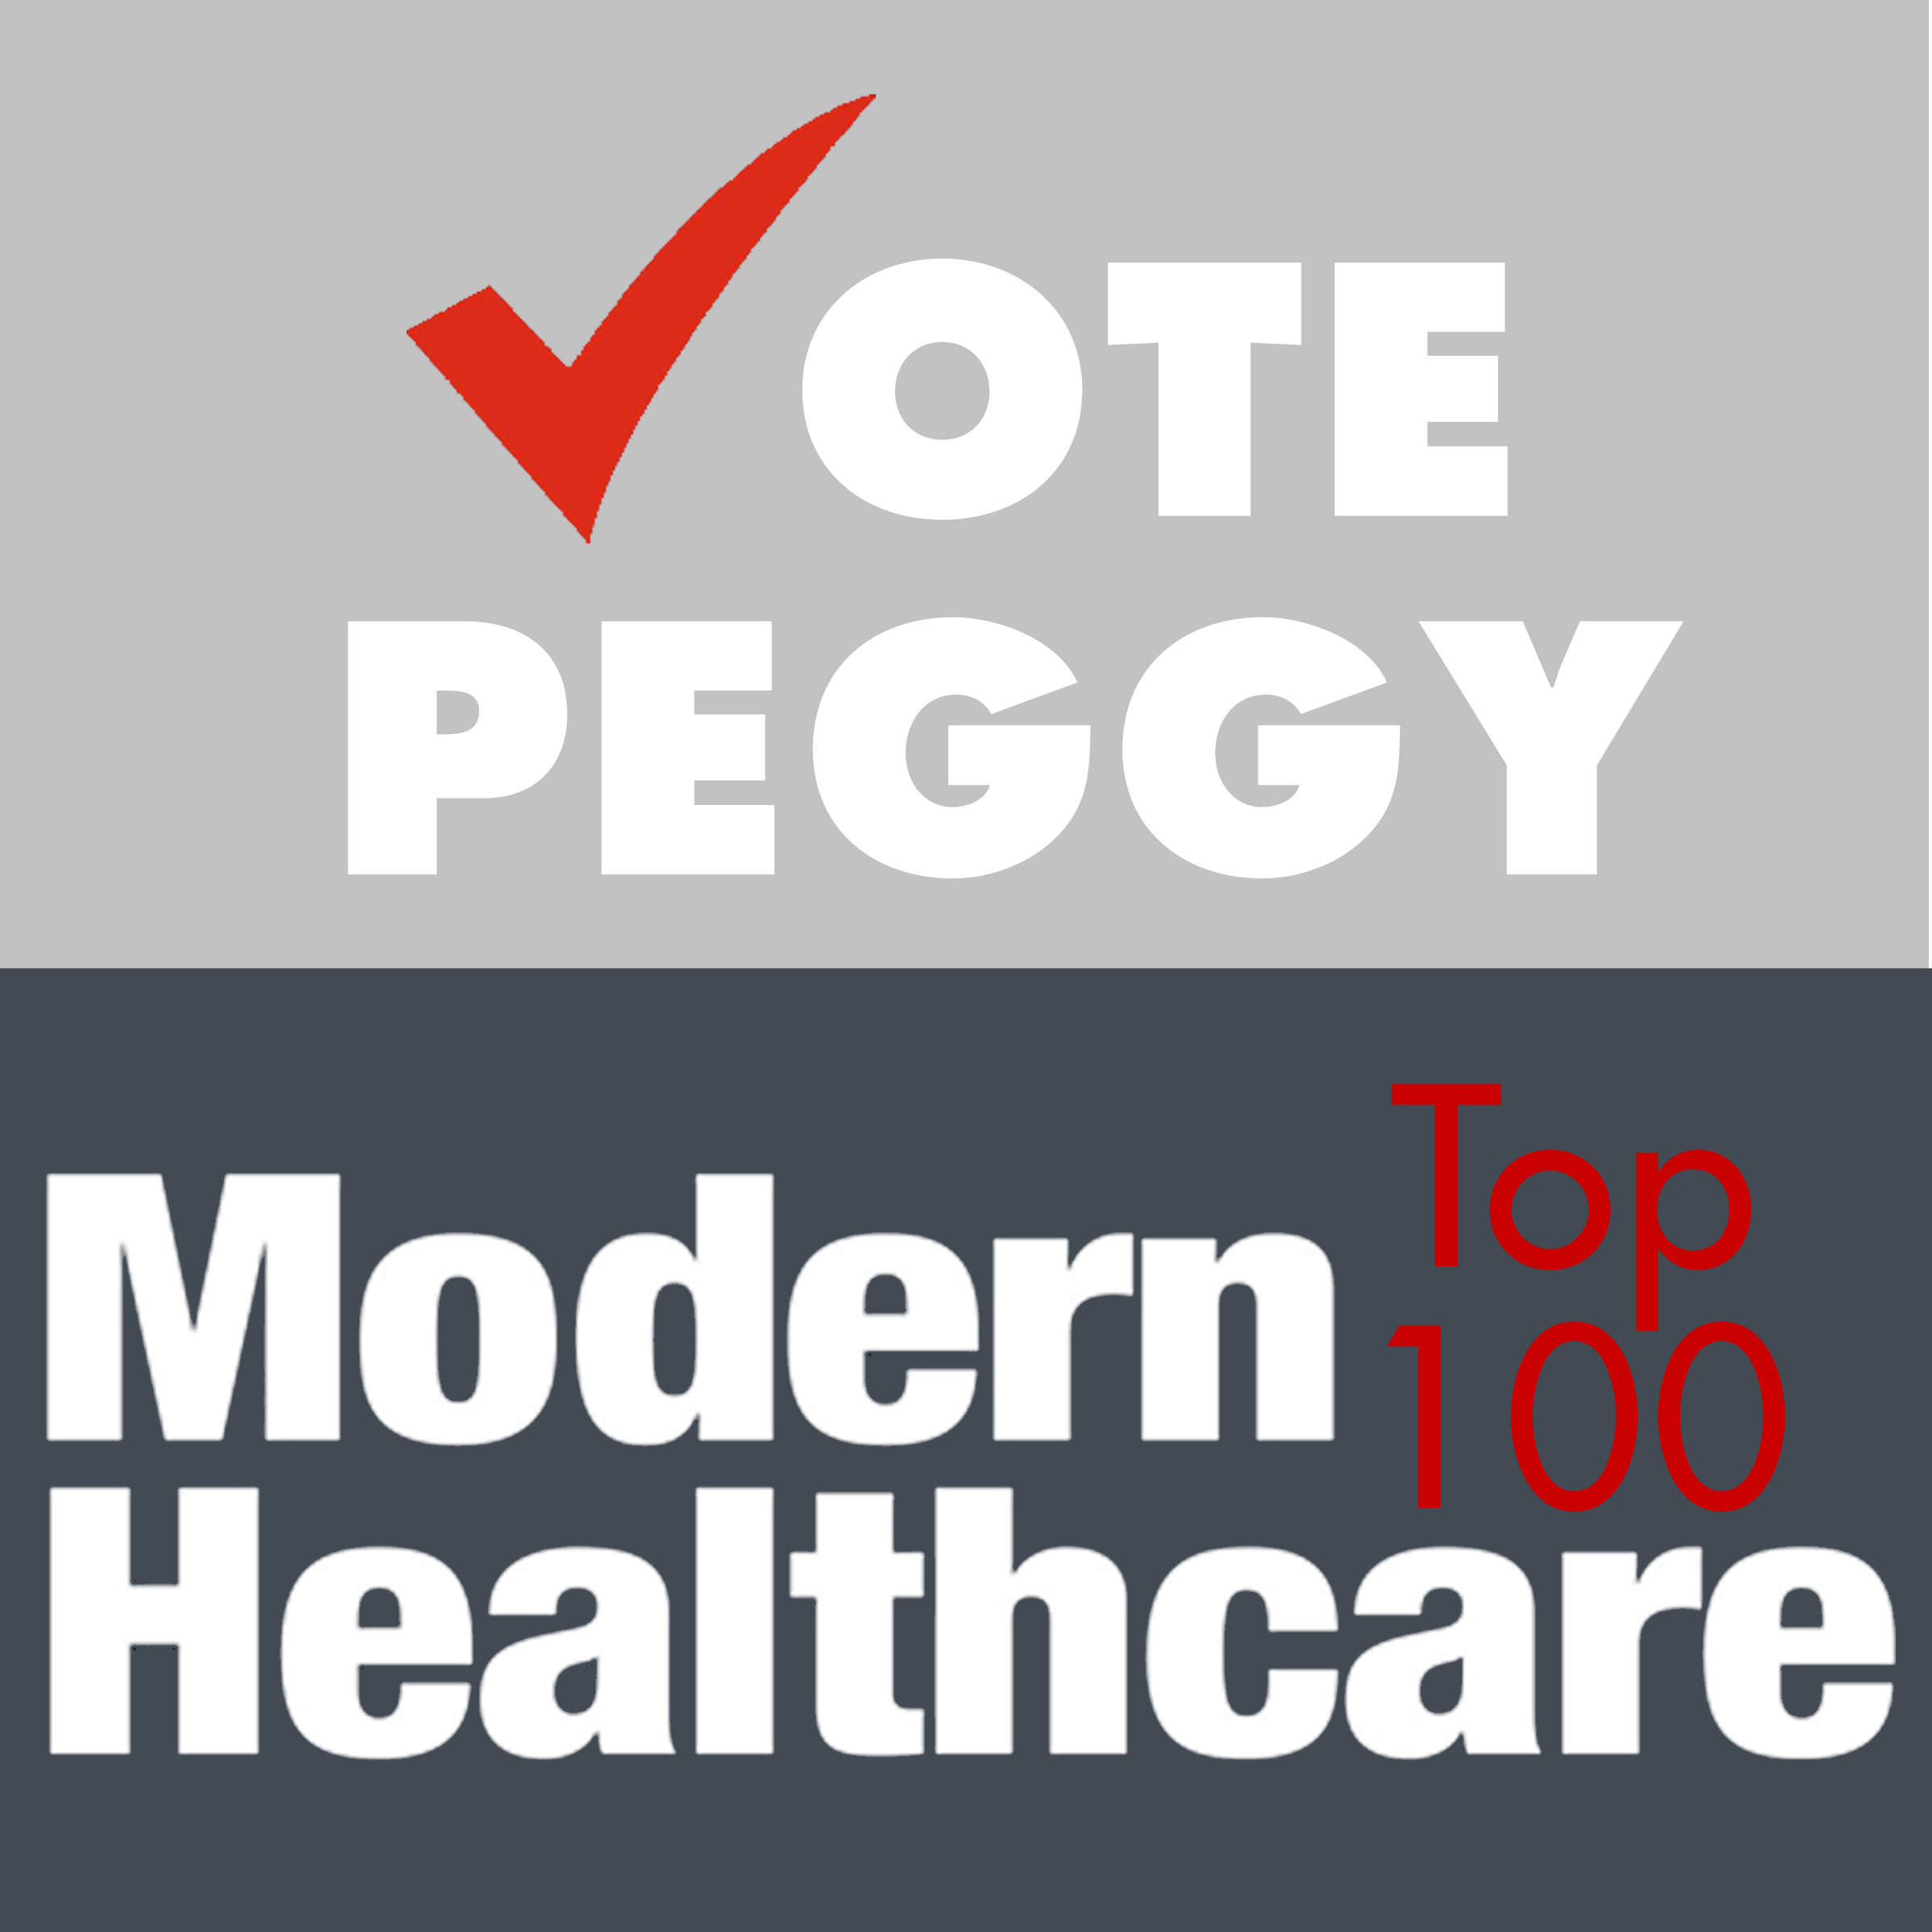 votepeggy-5